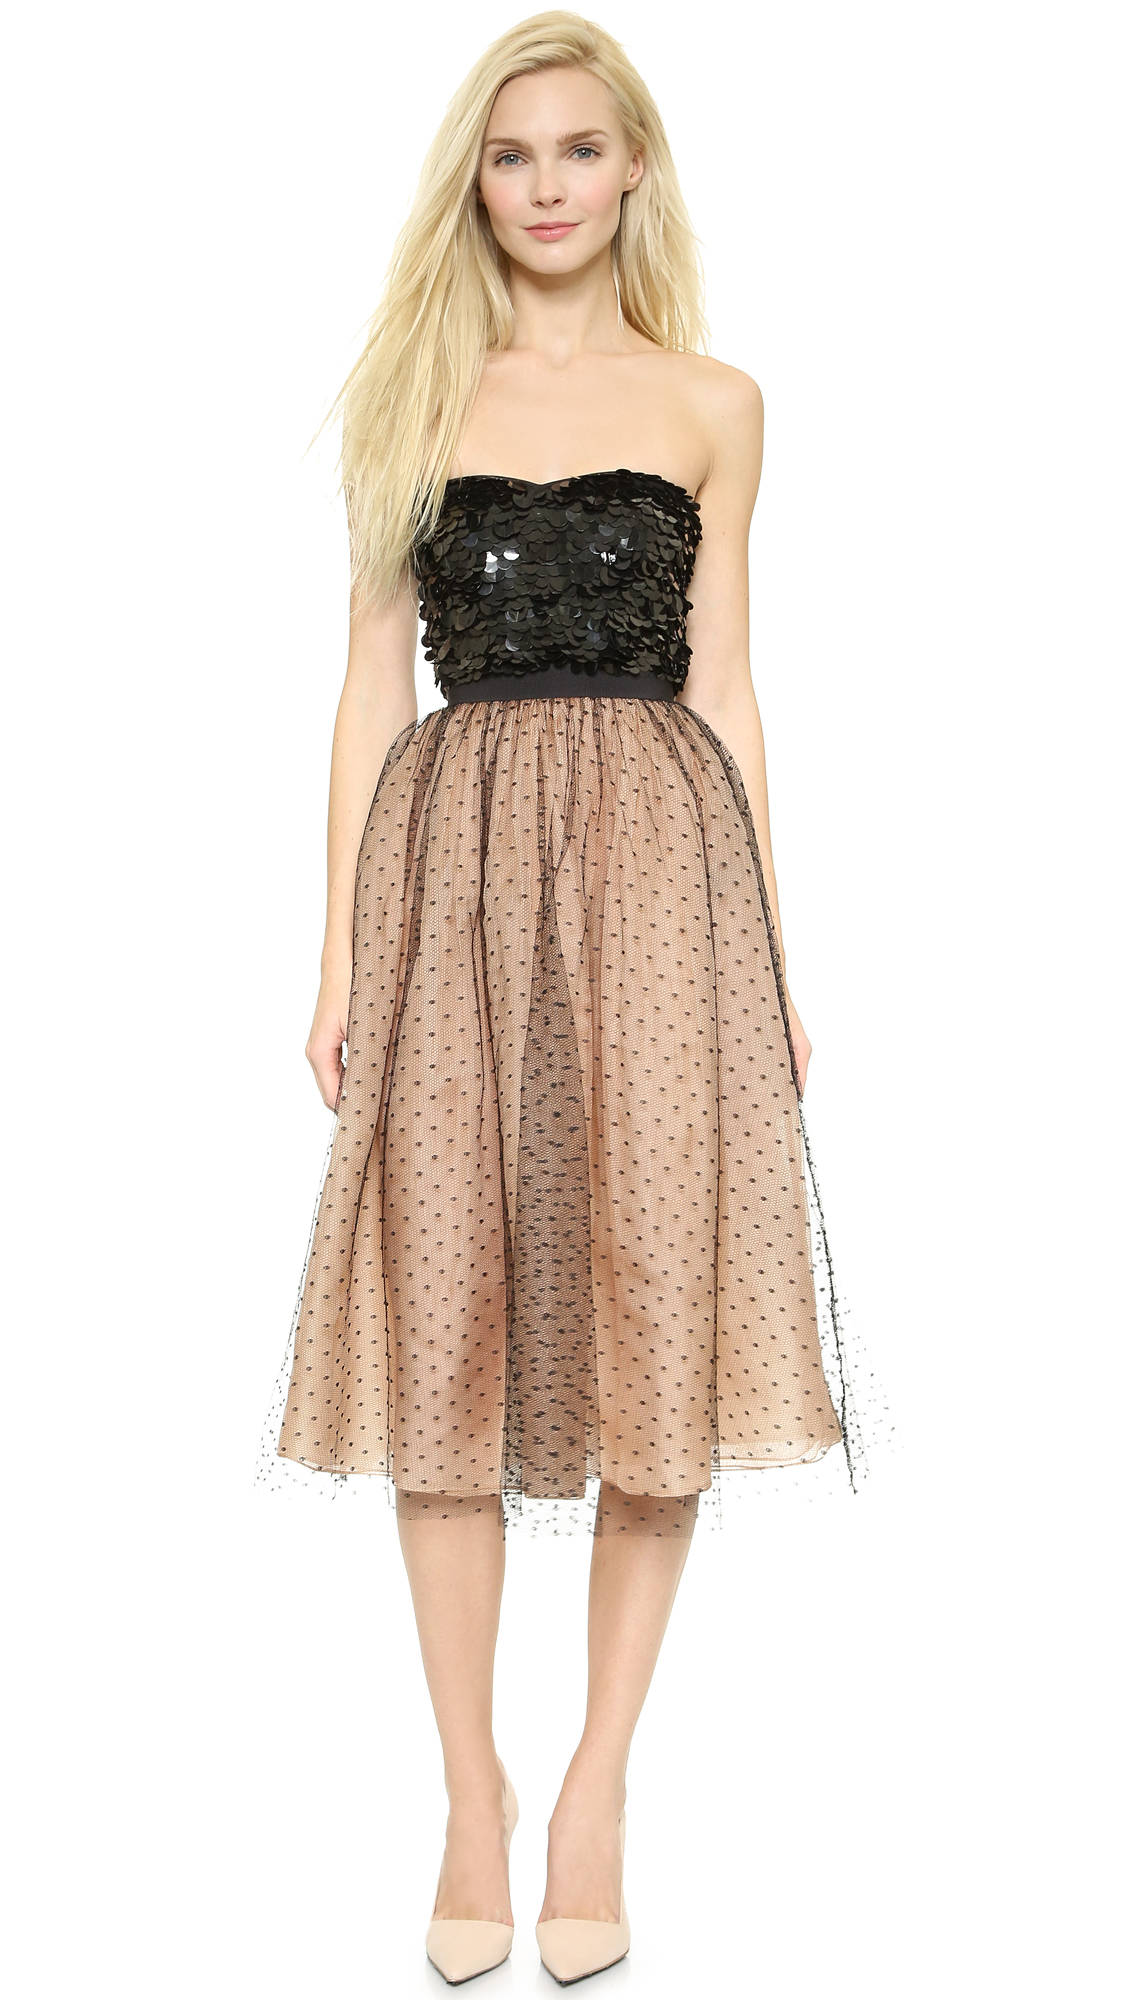 Red Valentino Spring 2016: Red Valentino Sequin Embellished Strapless Dress